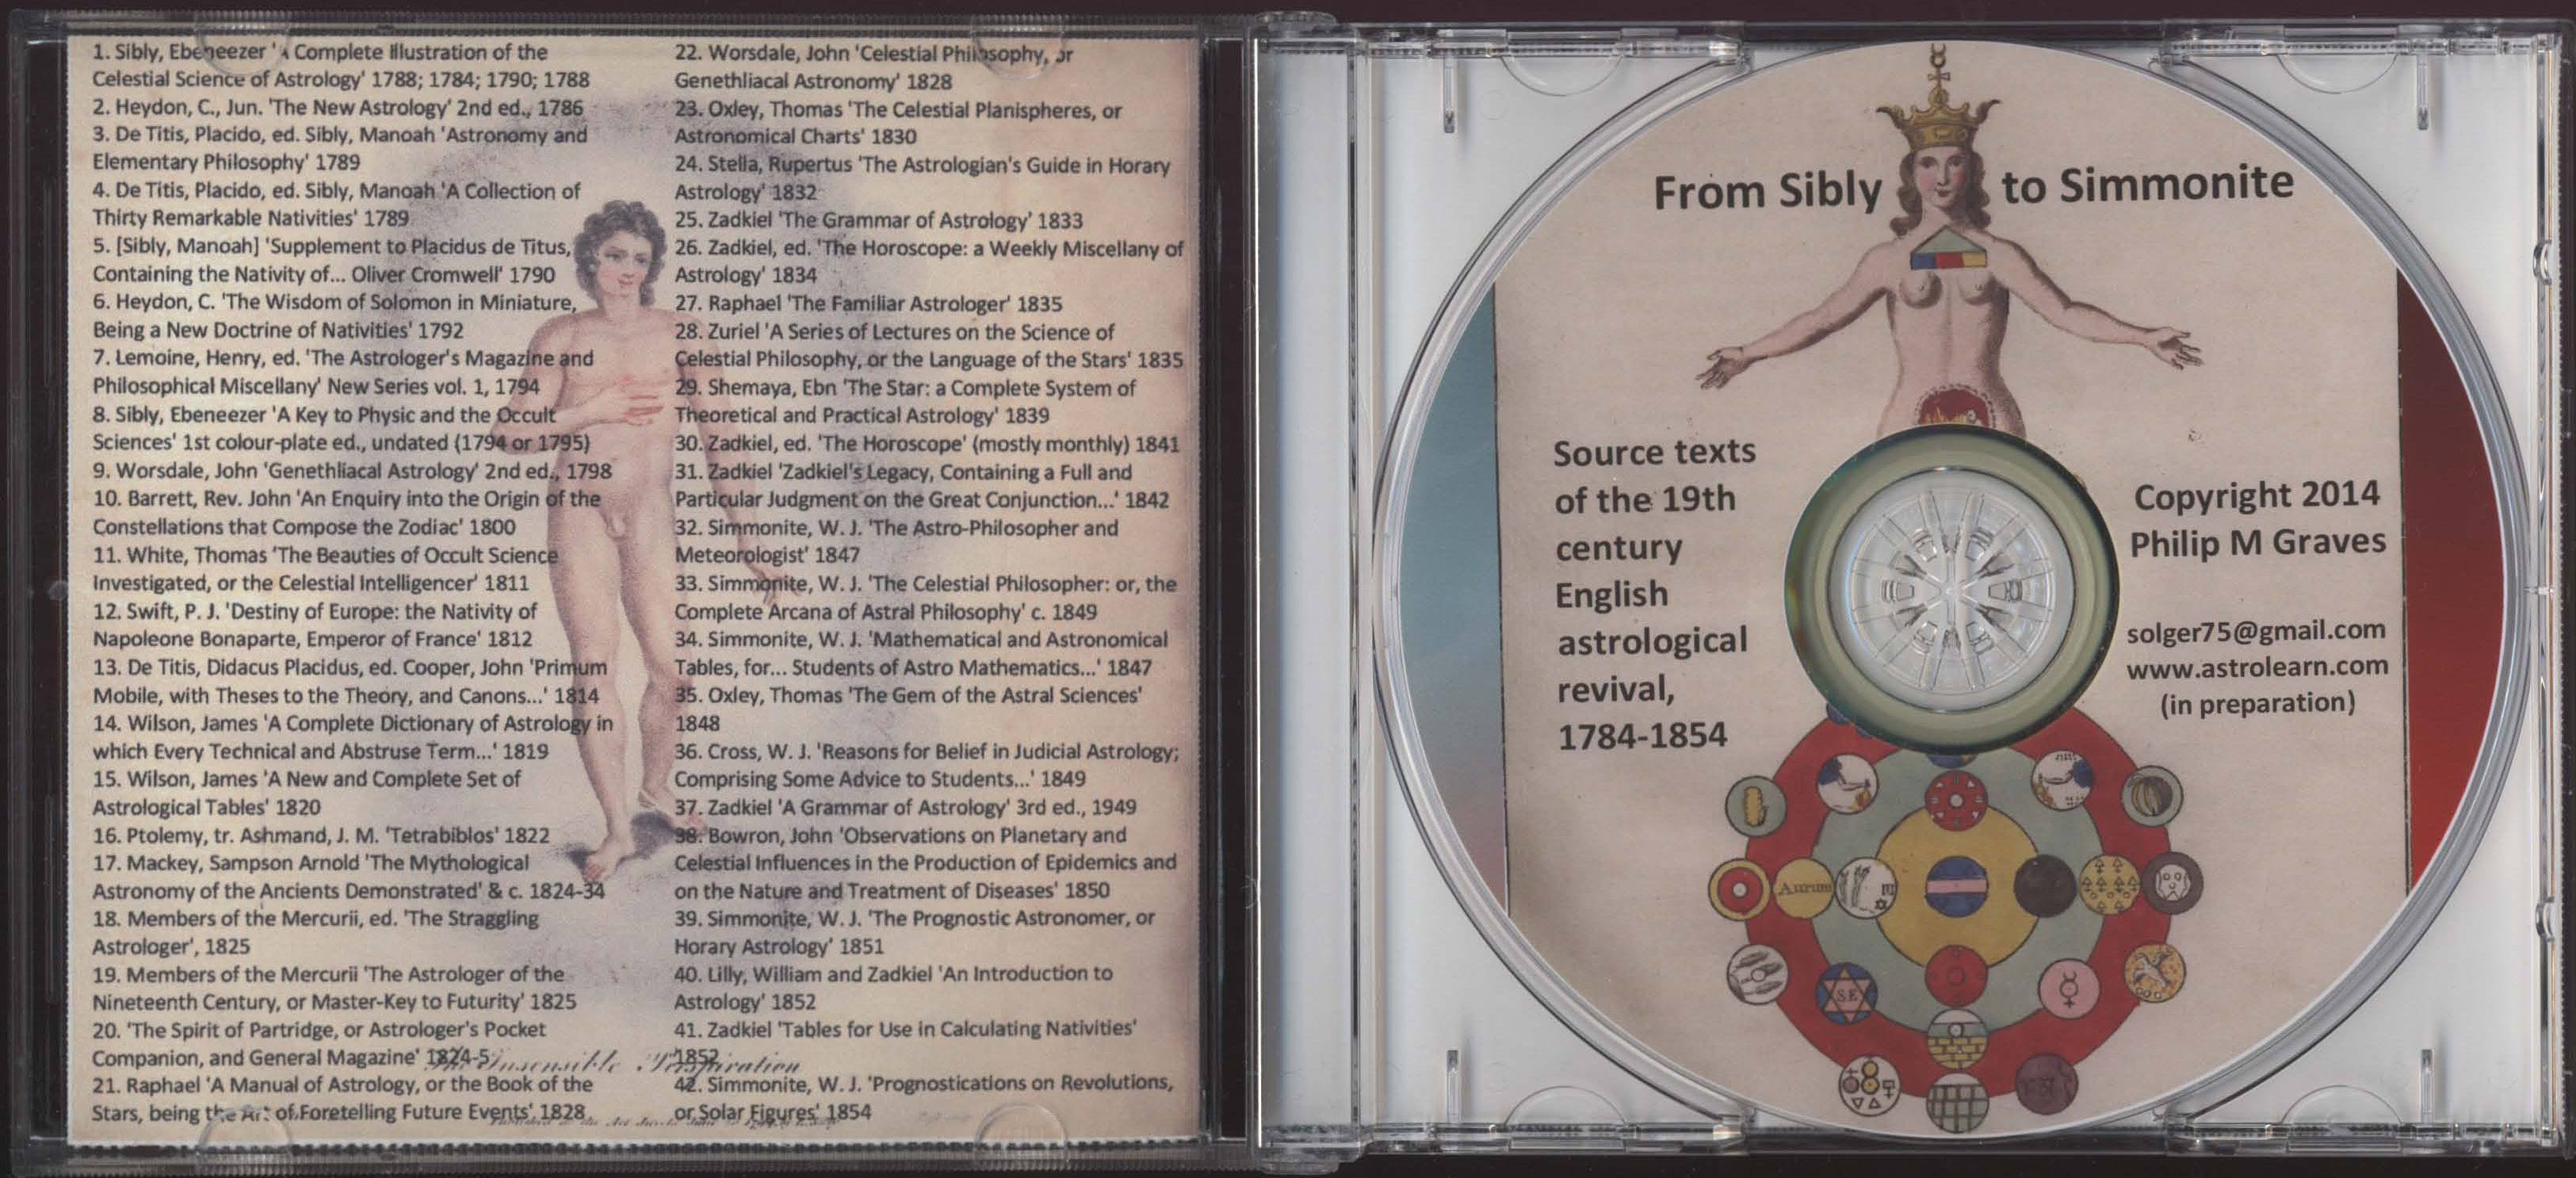 From Sibly to Simmonite: Source-Texts of the 19th century English Astrological Revival, 1784-1854, DVD, Open View